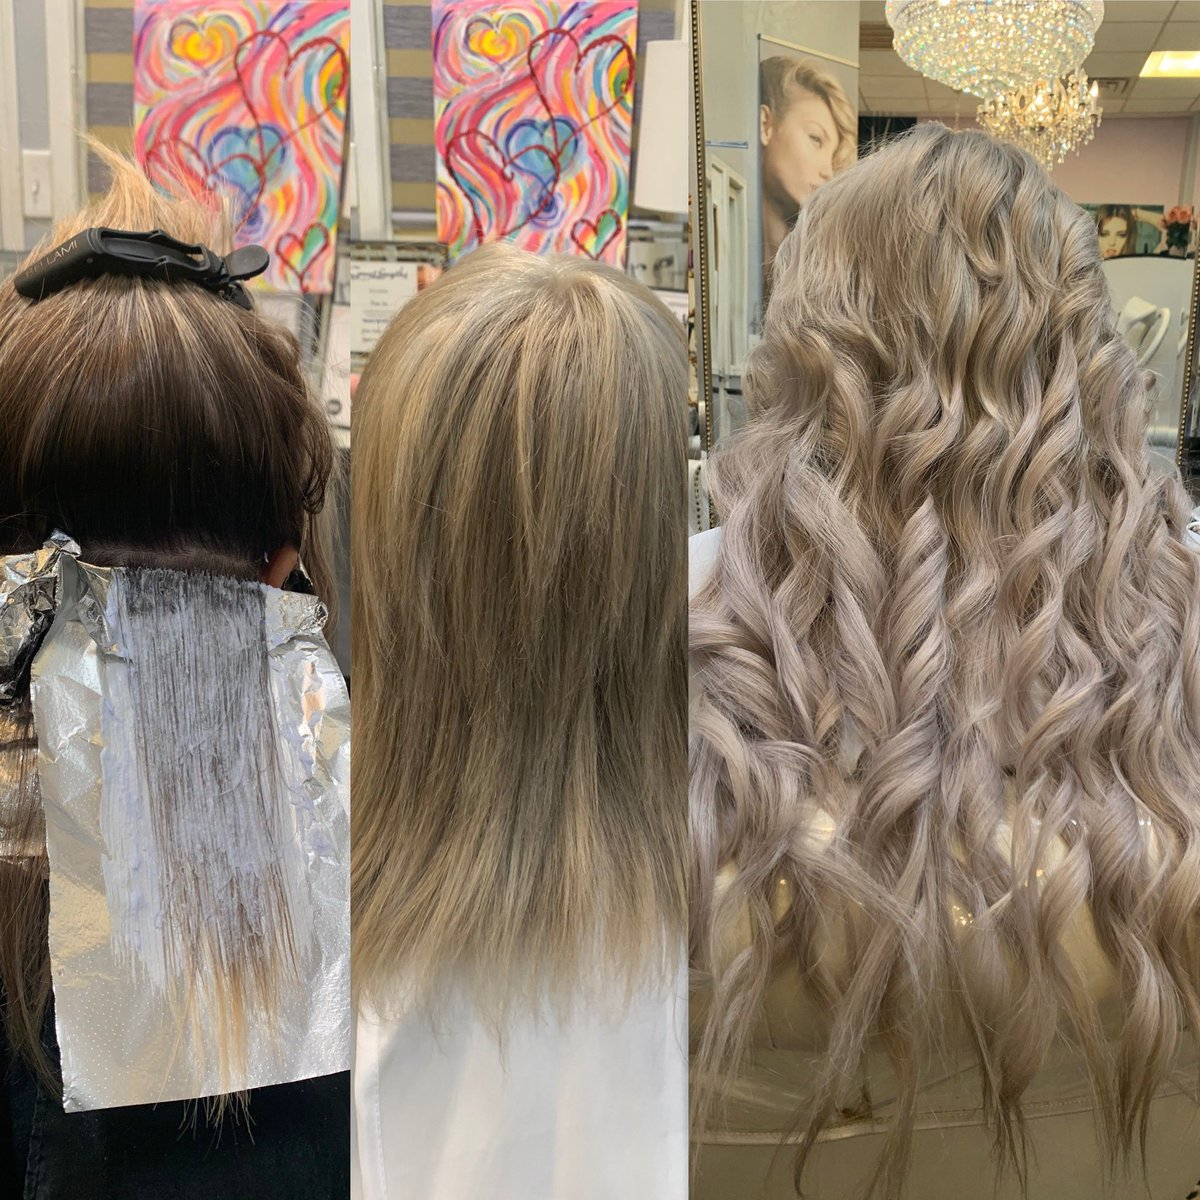 The hair ROOT & hair extensions Color corrections & NBR Hair Extensions during process . https://goo.gl/mF6nGB #Greatlengthsusa #modernsalon #hairdreams #dallascowboy #dallasmodels #bellamipro #beadedweftextensions #nbrextensions #behindthechair #hairUwear #colorcorrectionspic.twitter.com/f56G0ZntgY